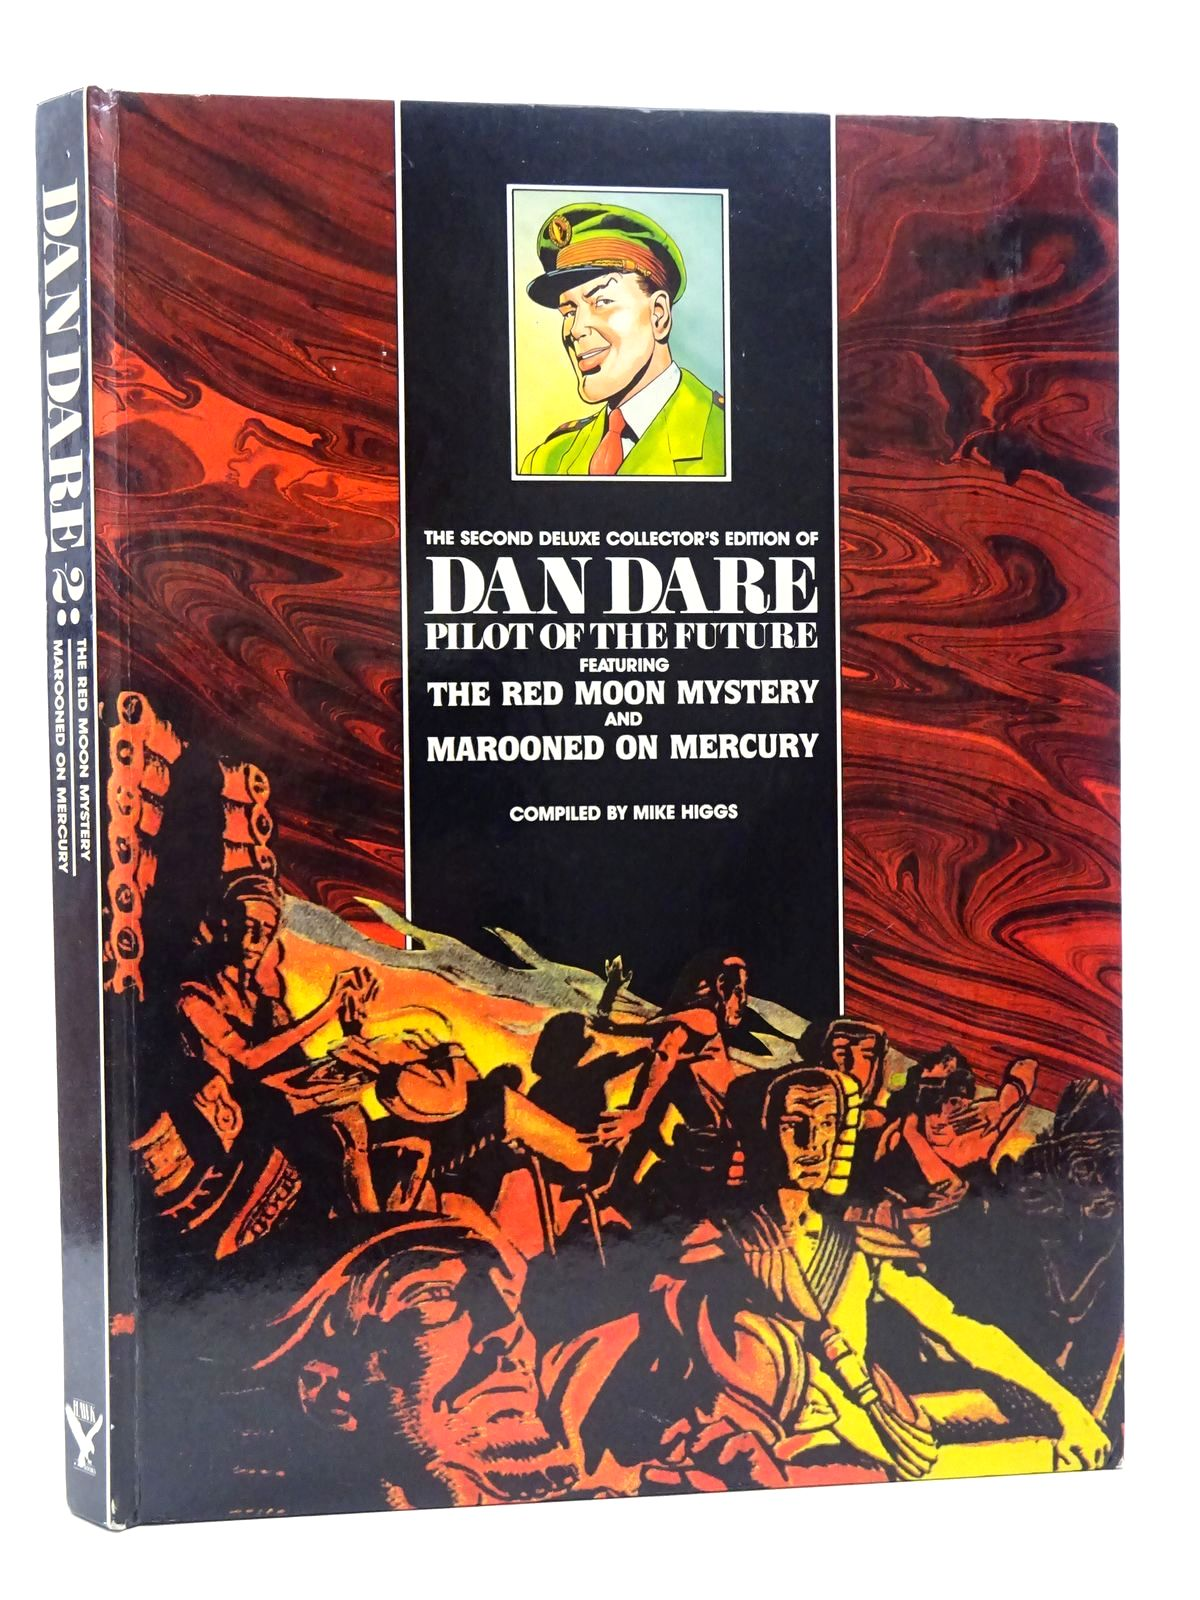 Photo of THE SECOND DELUXE COLLECTOR'S EDITION OF DAN DARE PILOT OF THE FUTURE written by Higgs, Mike published by Hawk Books Limited (STOCK CODE: 2124551)  for sale by Stella & Rose's Books